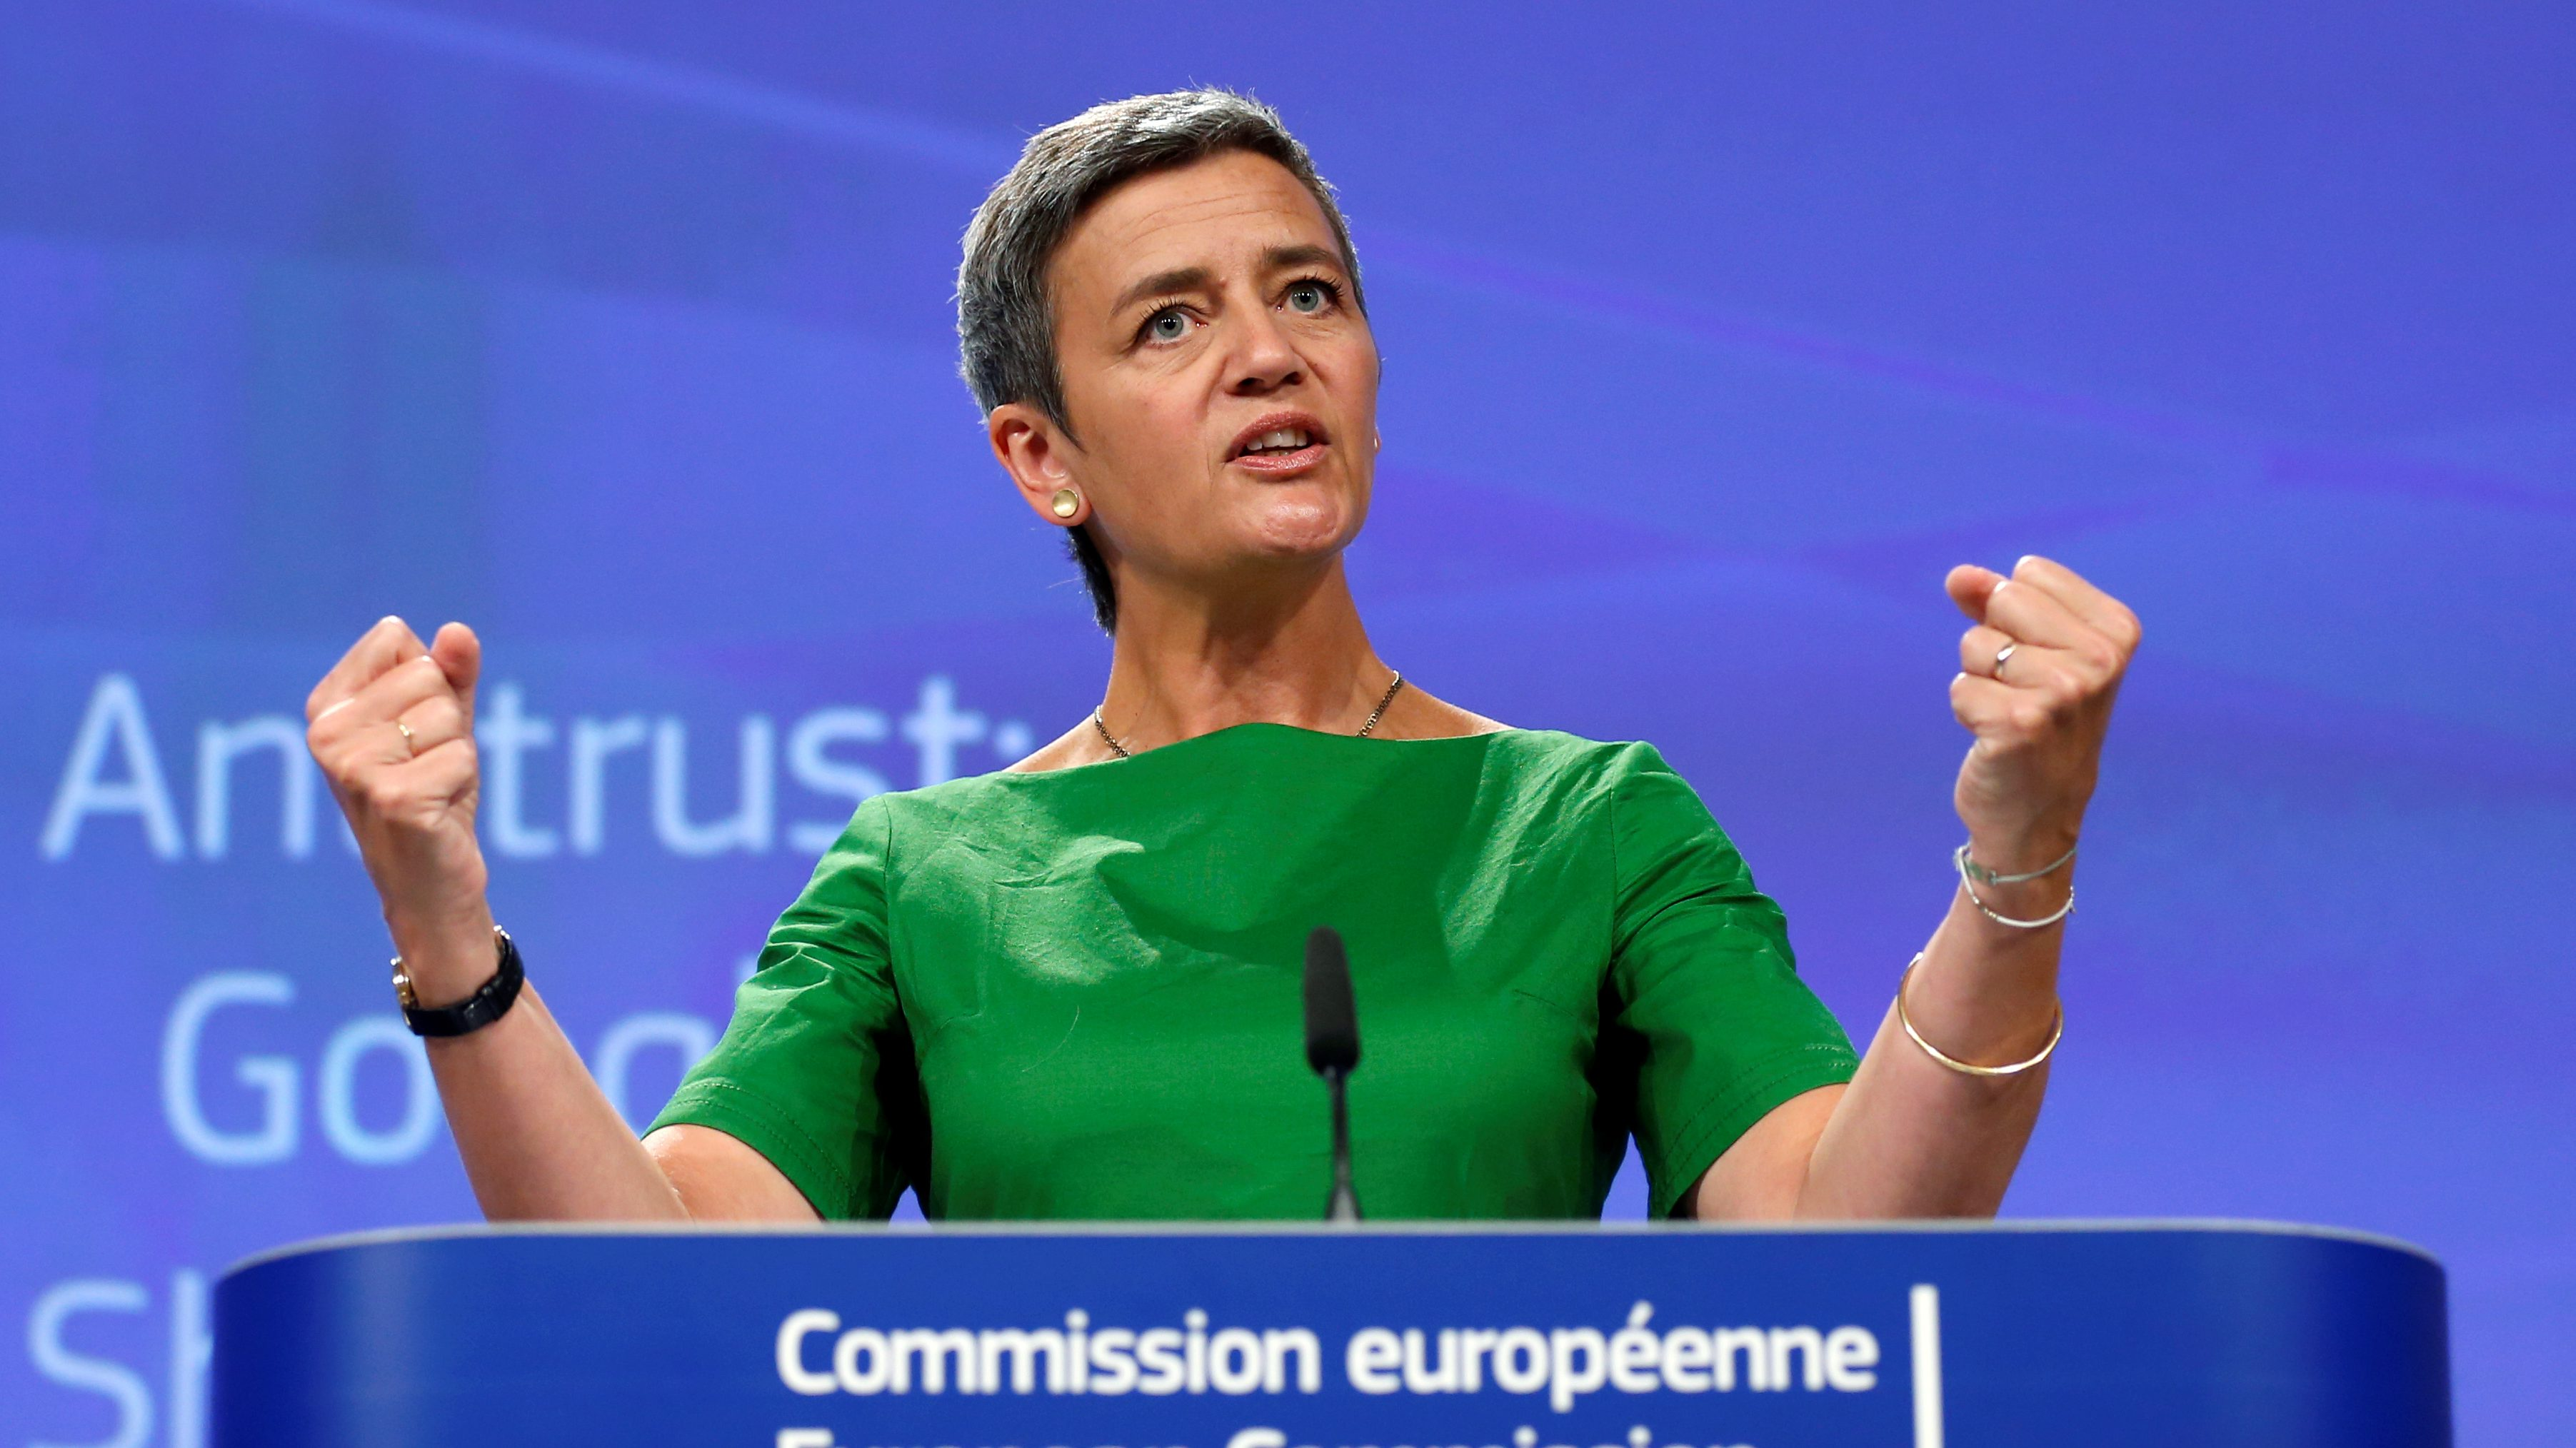 EU Competition Commissioner Vestager holds a news conference in Brussels